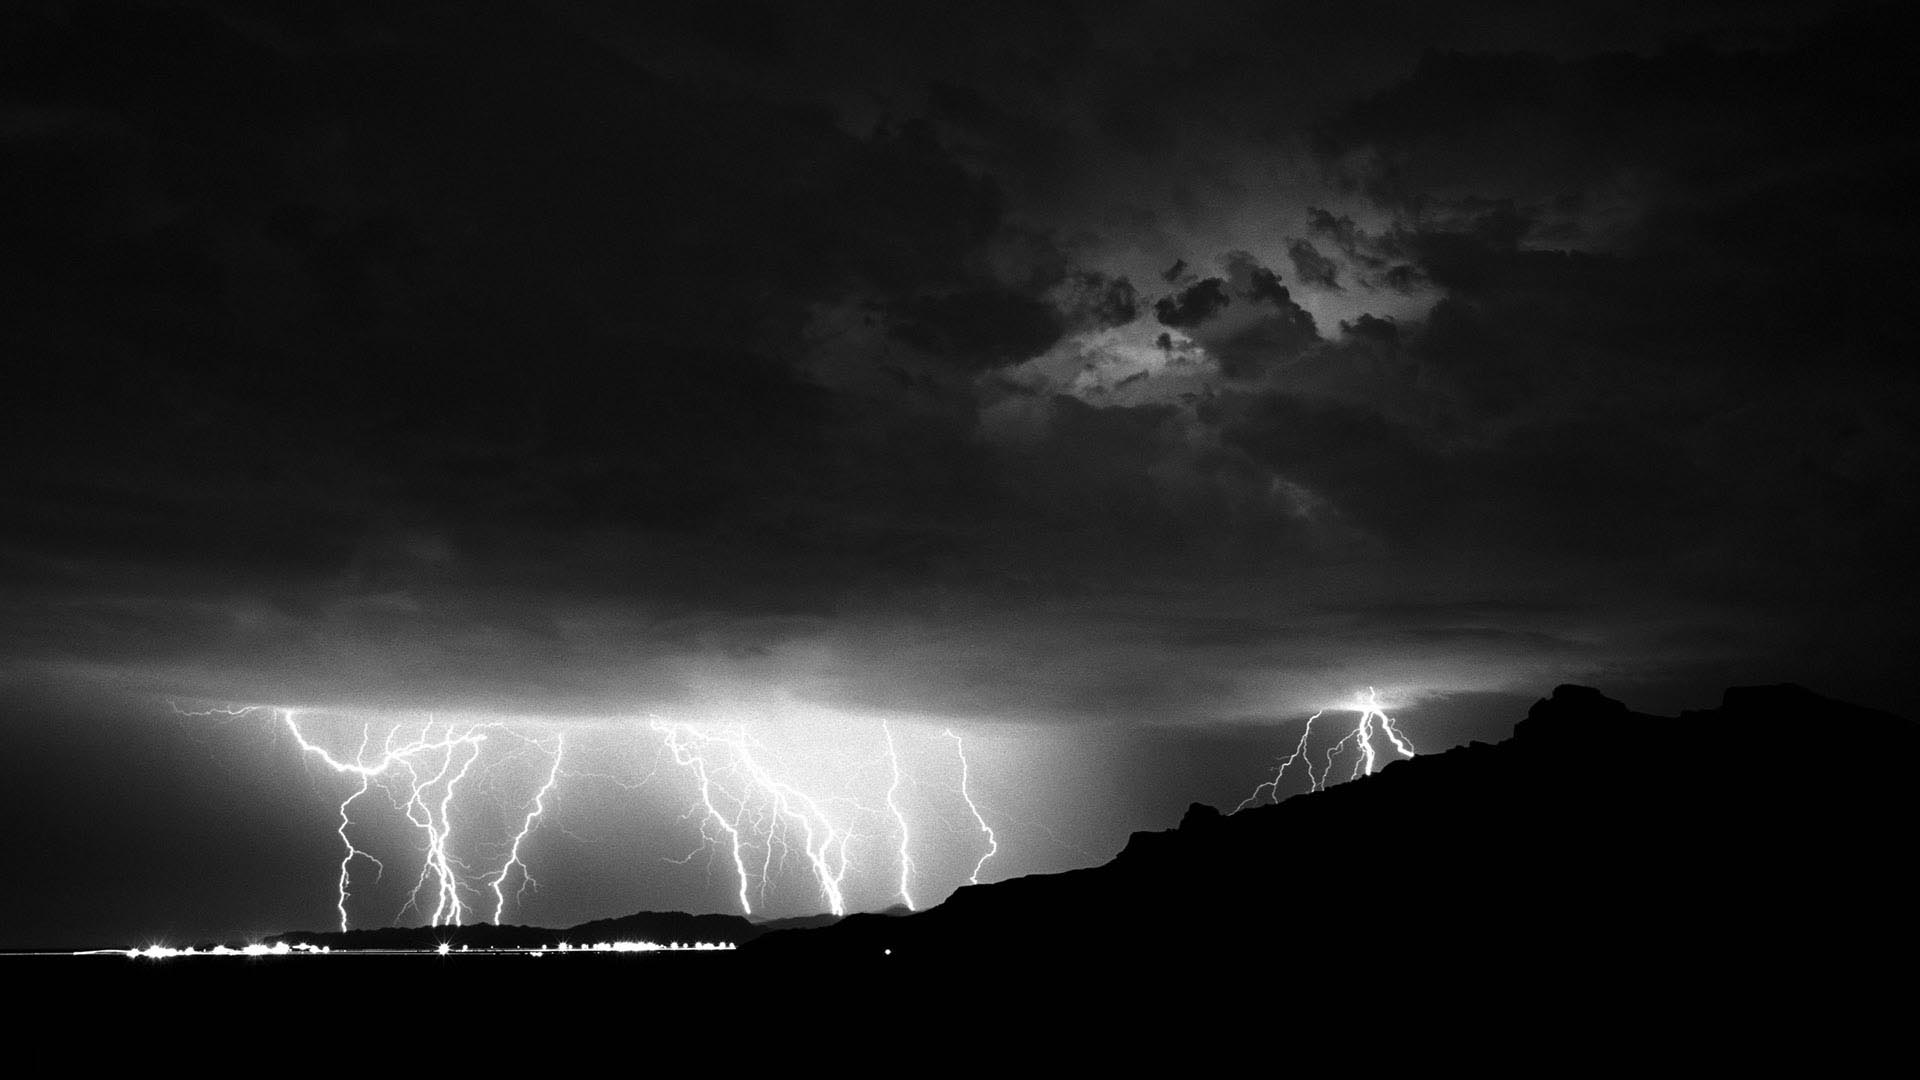 Lightning Storm Background, wallpaper, Lightning Storm Backgrounds